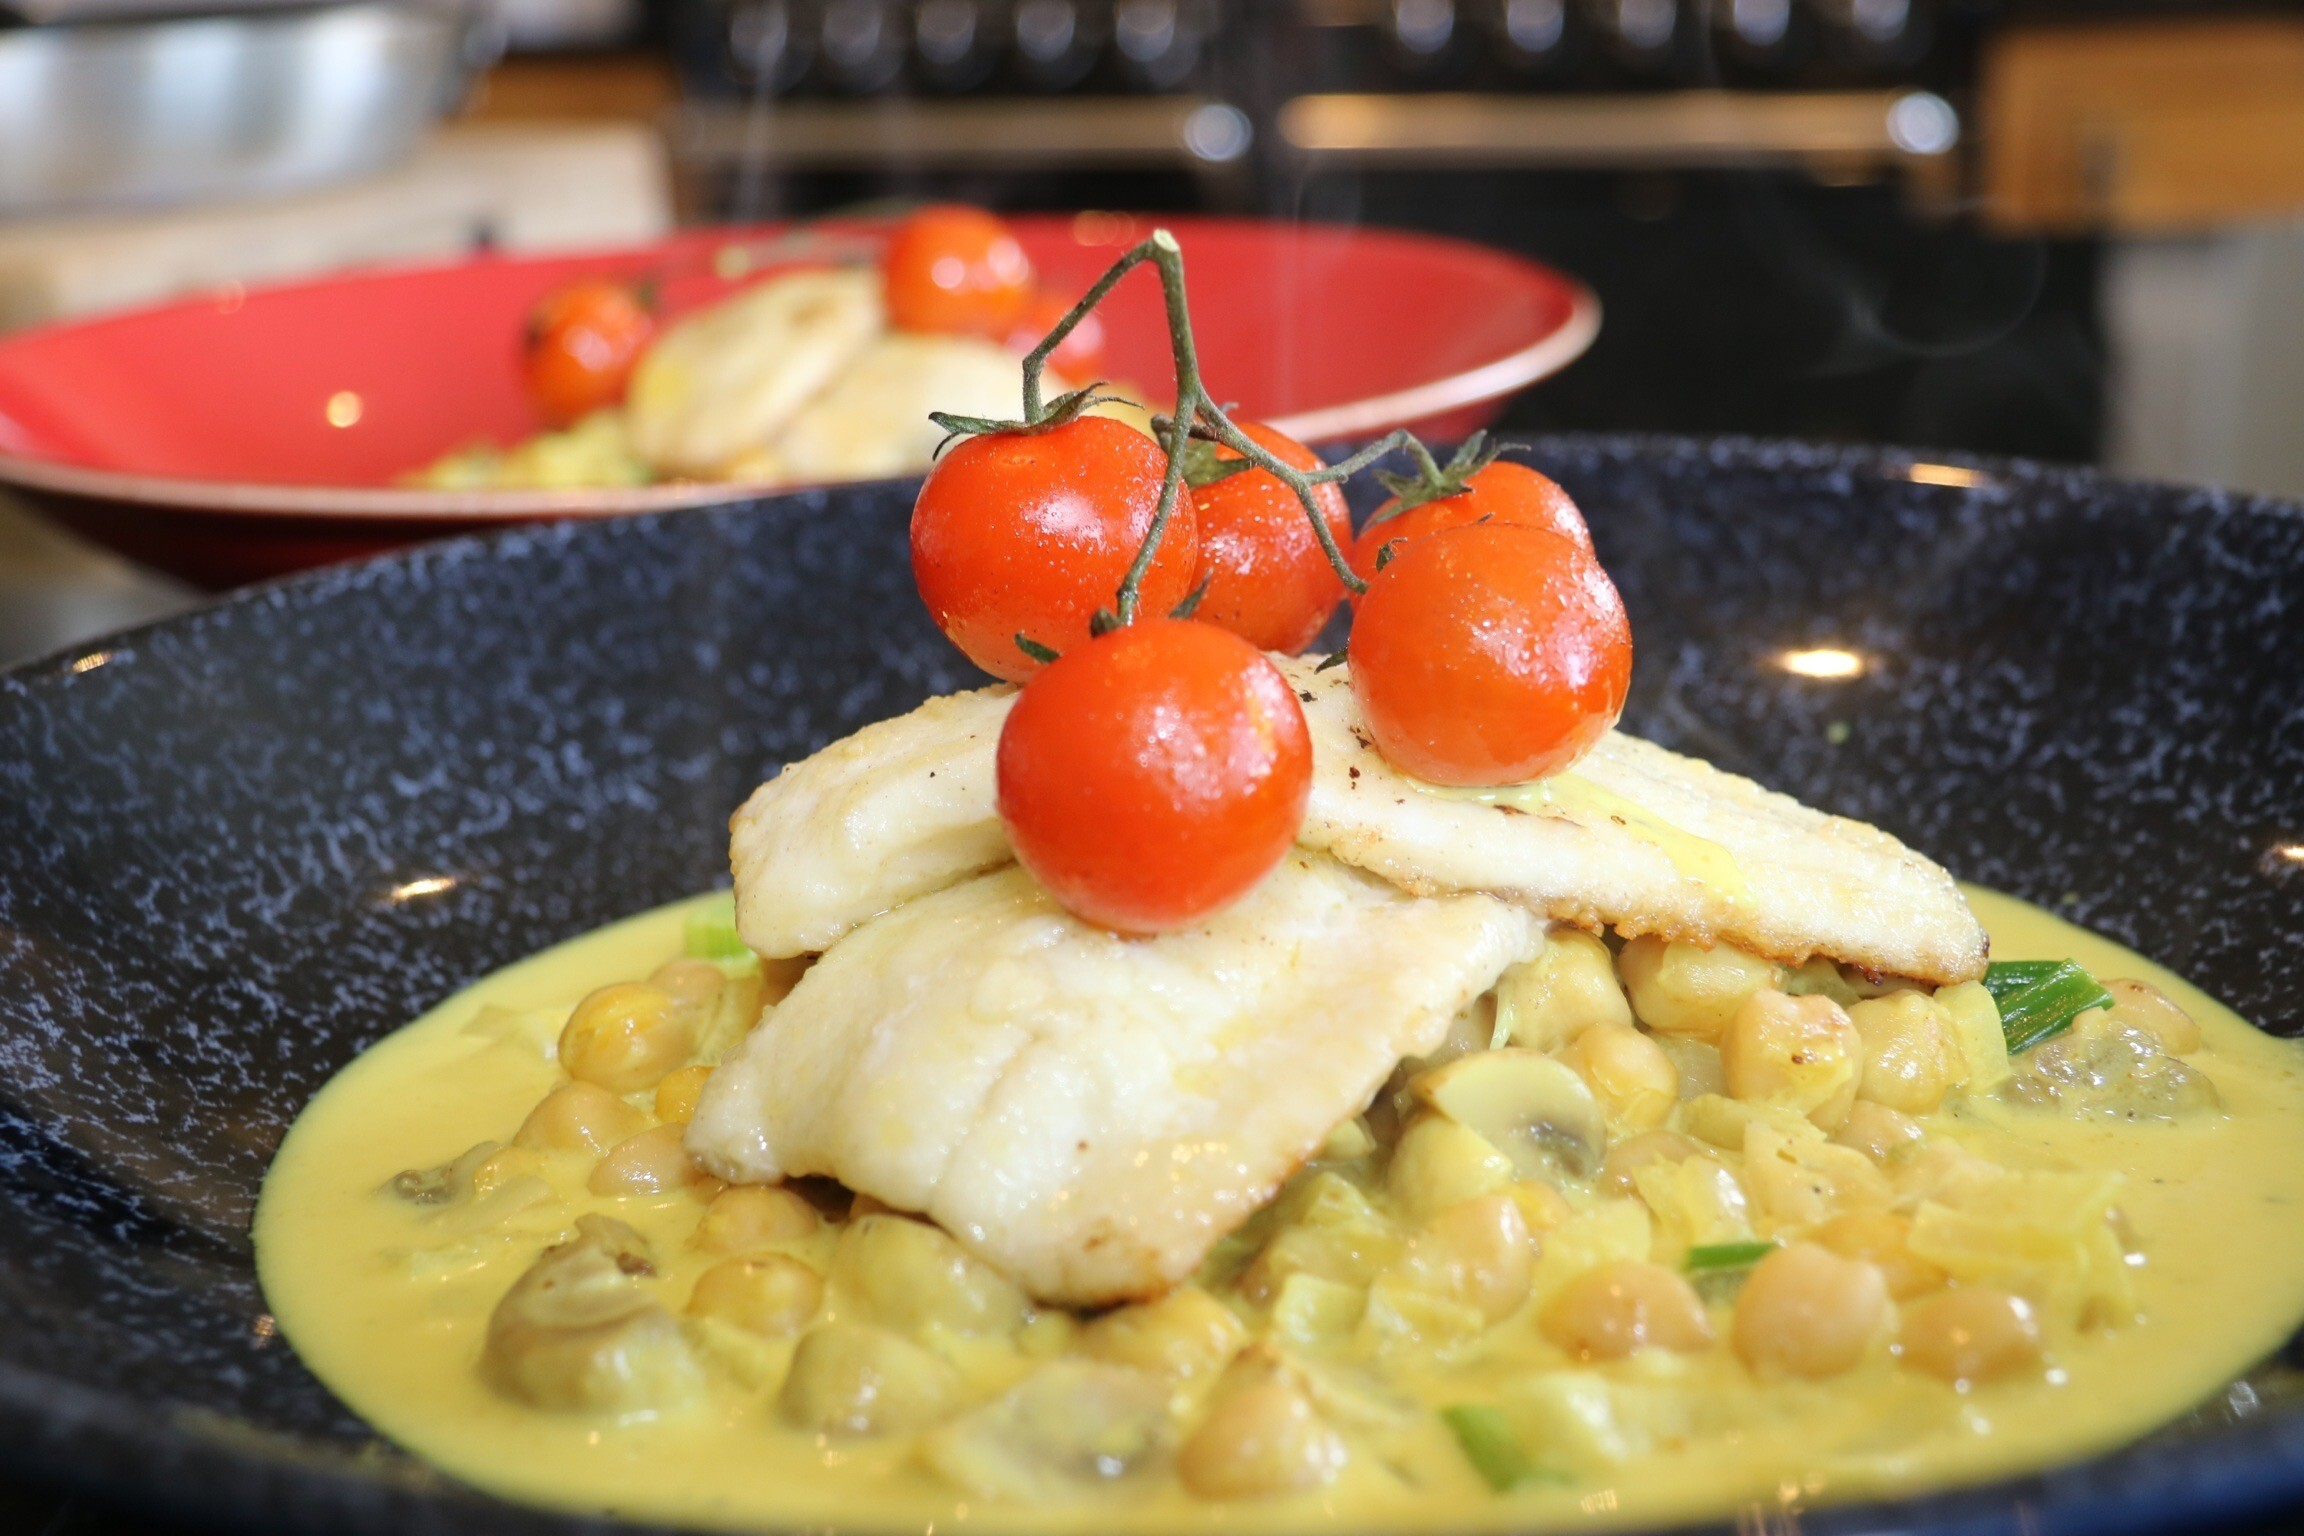 Pan-Fried Brill with a Chickpea & Mushroom Ragout by Siobhán Devereux Doyle